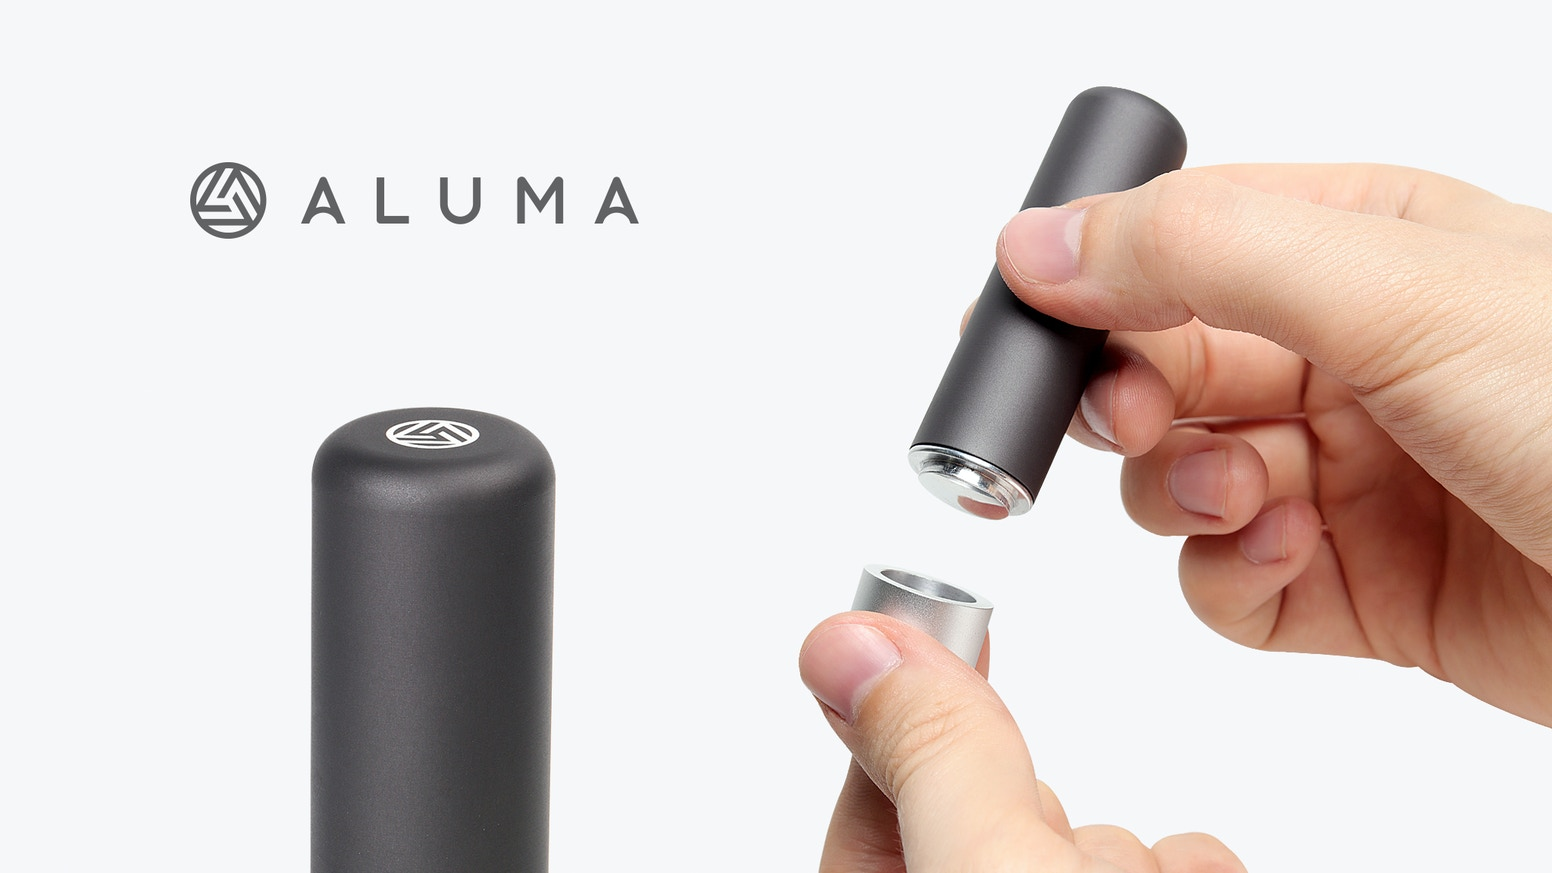 ALUMA: The World's First Magnetic Wax Seal